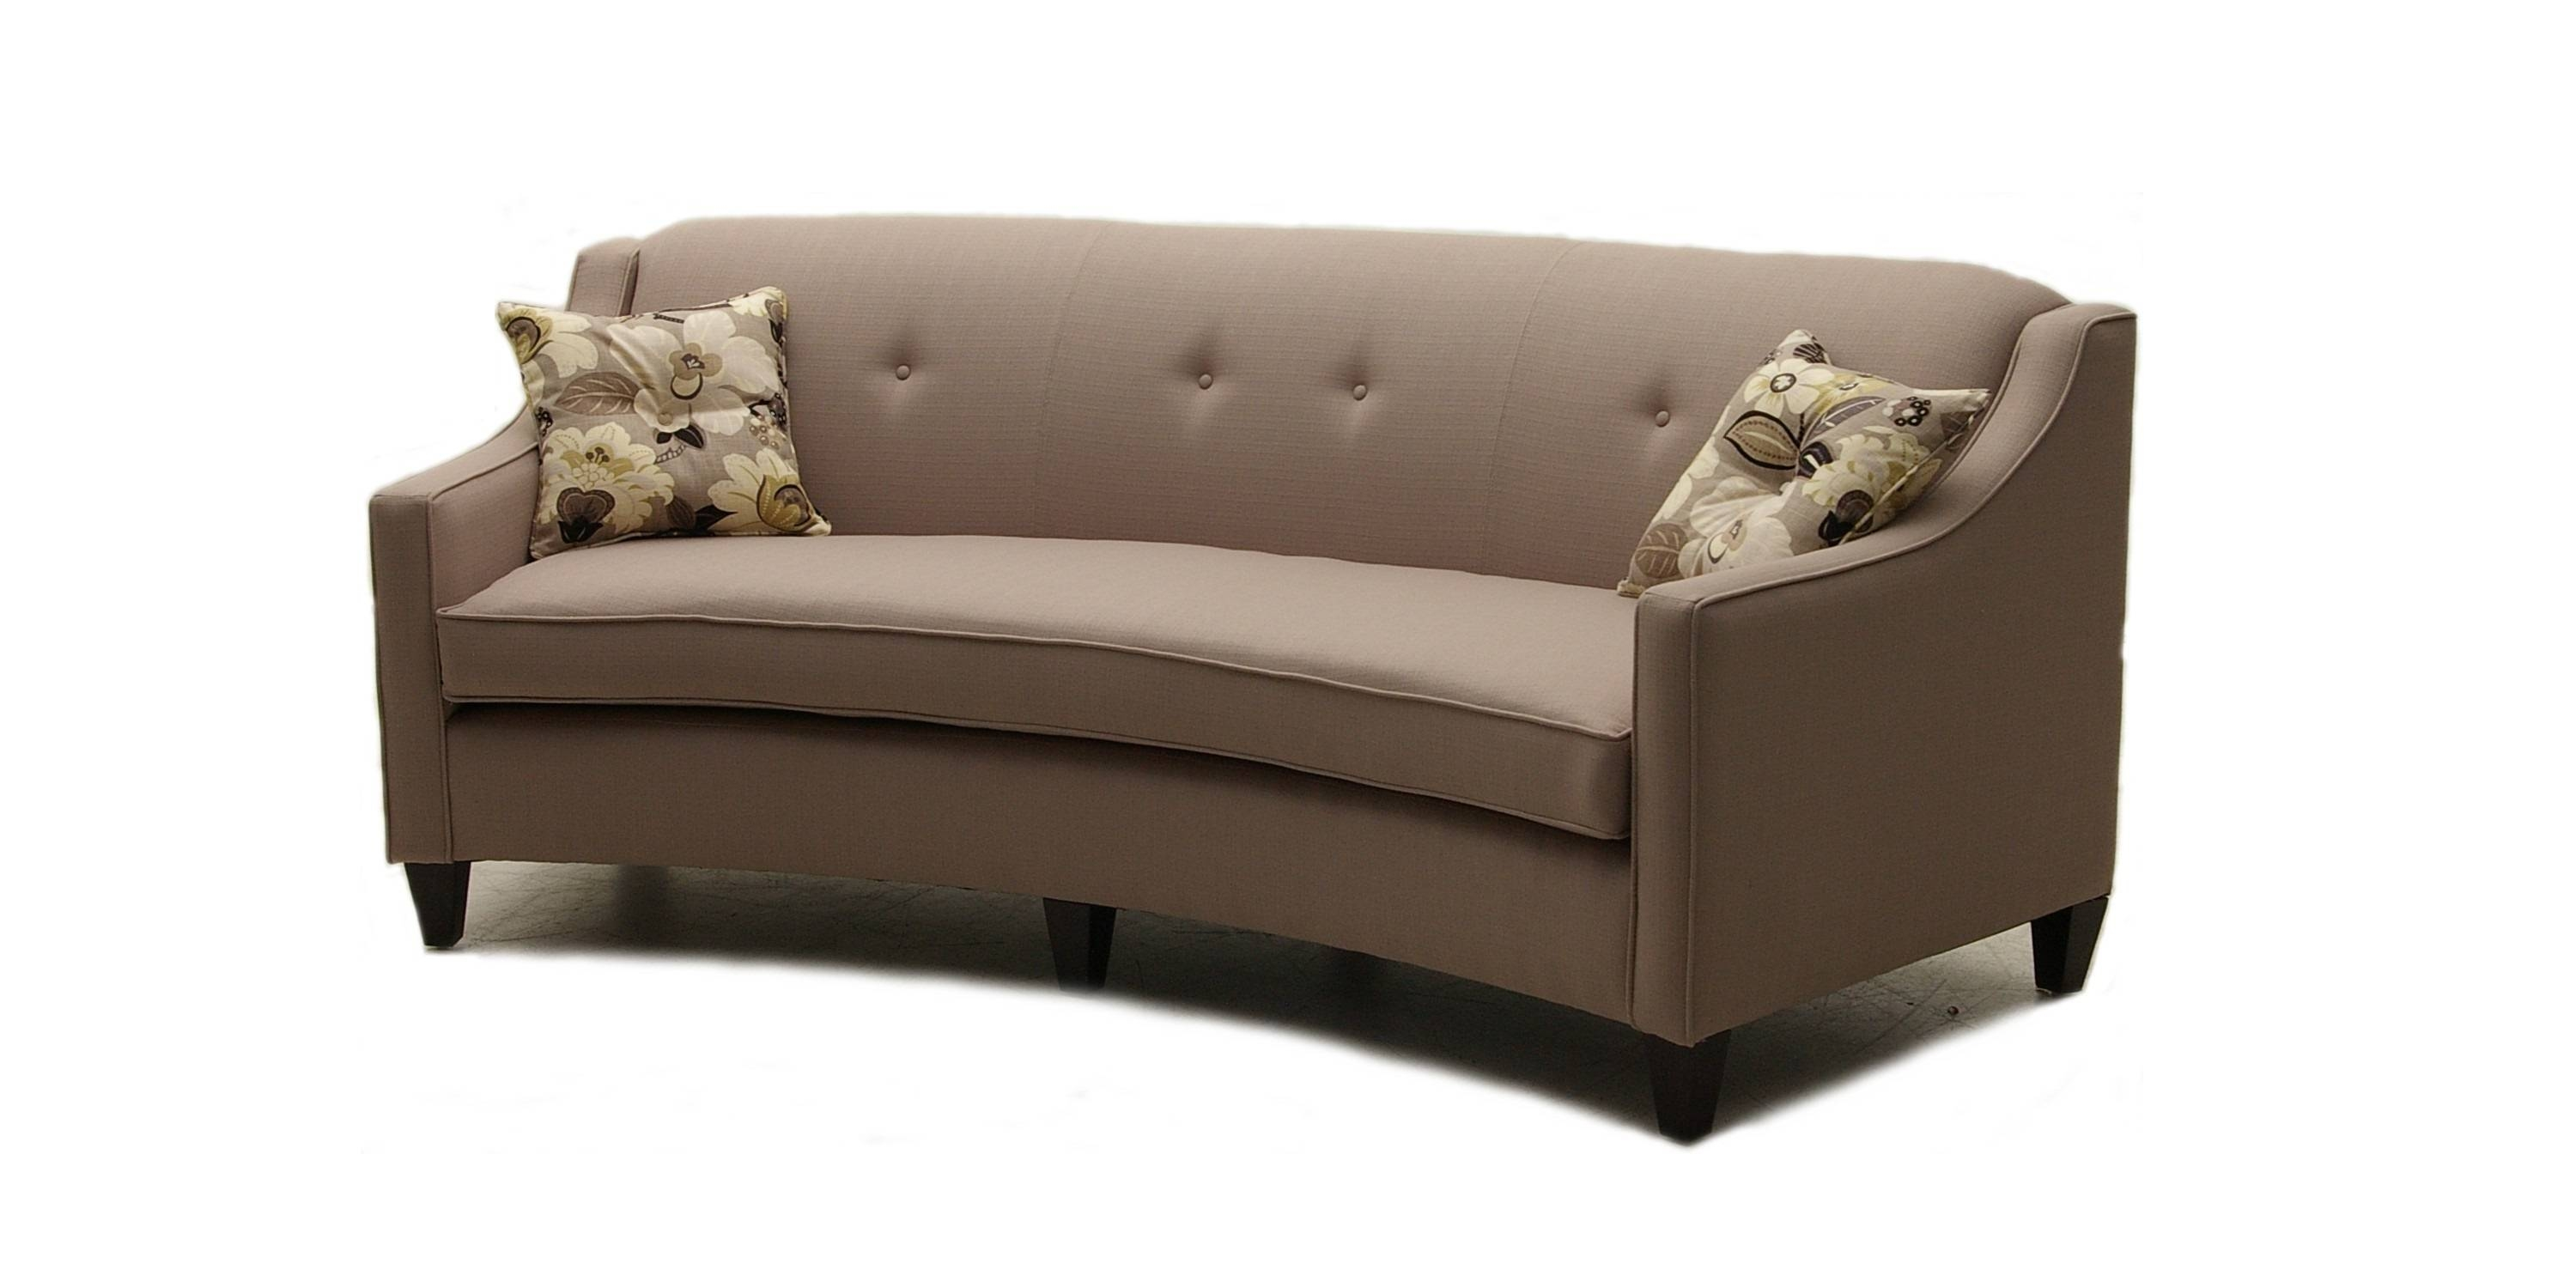 Furniture: Couch Sectional | Sofa With Chaise Lounge | Round Couches intended for Round Sectional Sofa Bed (Image 12 of 25)